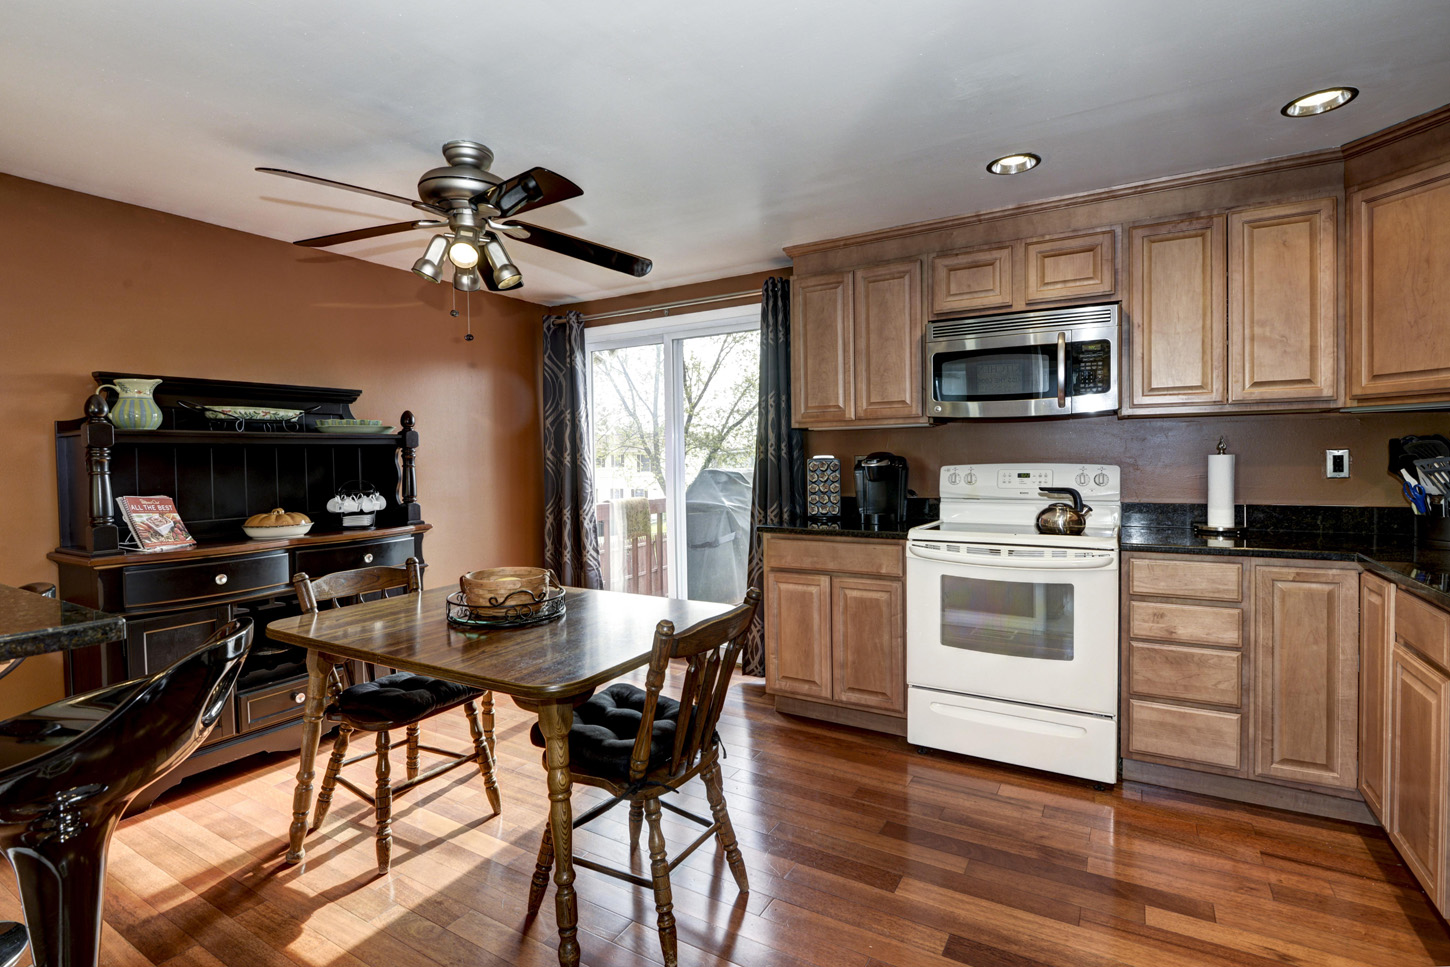 HOMEVISIT VIRTUAL TOUR 426 MARYLAND AVE CATONSVILLE MD